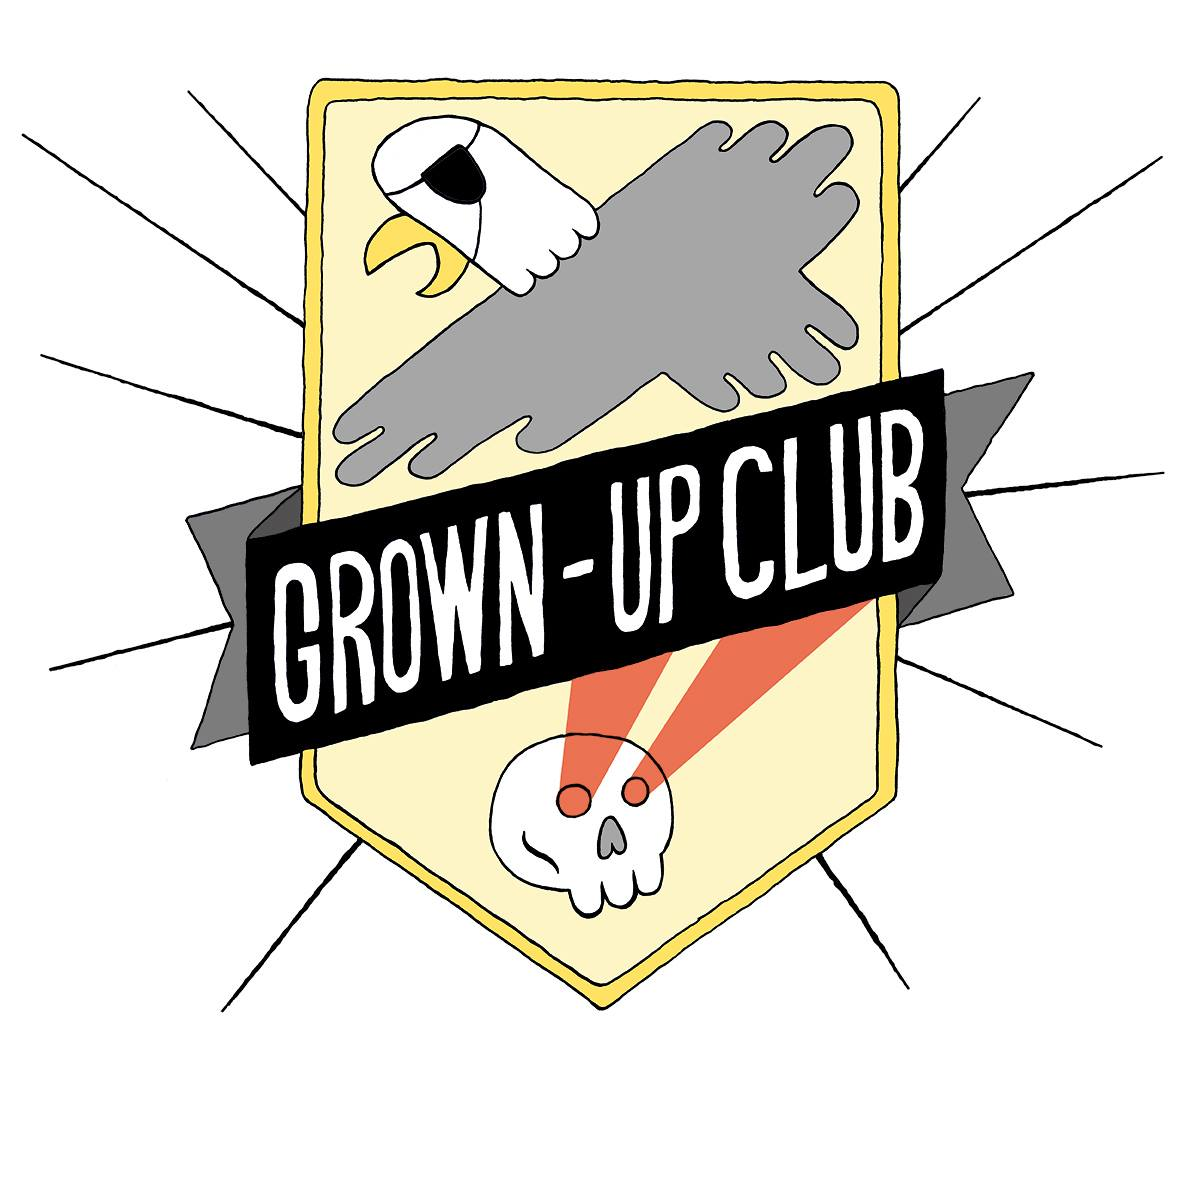 Grown-Up Club